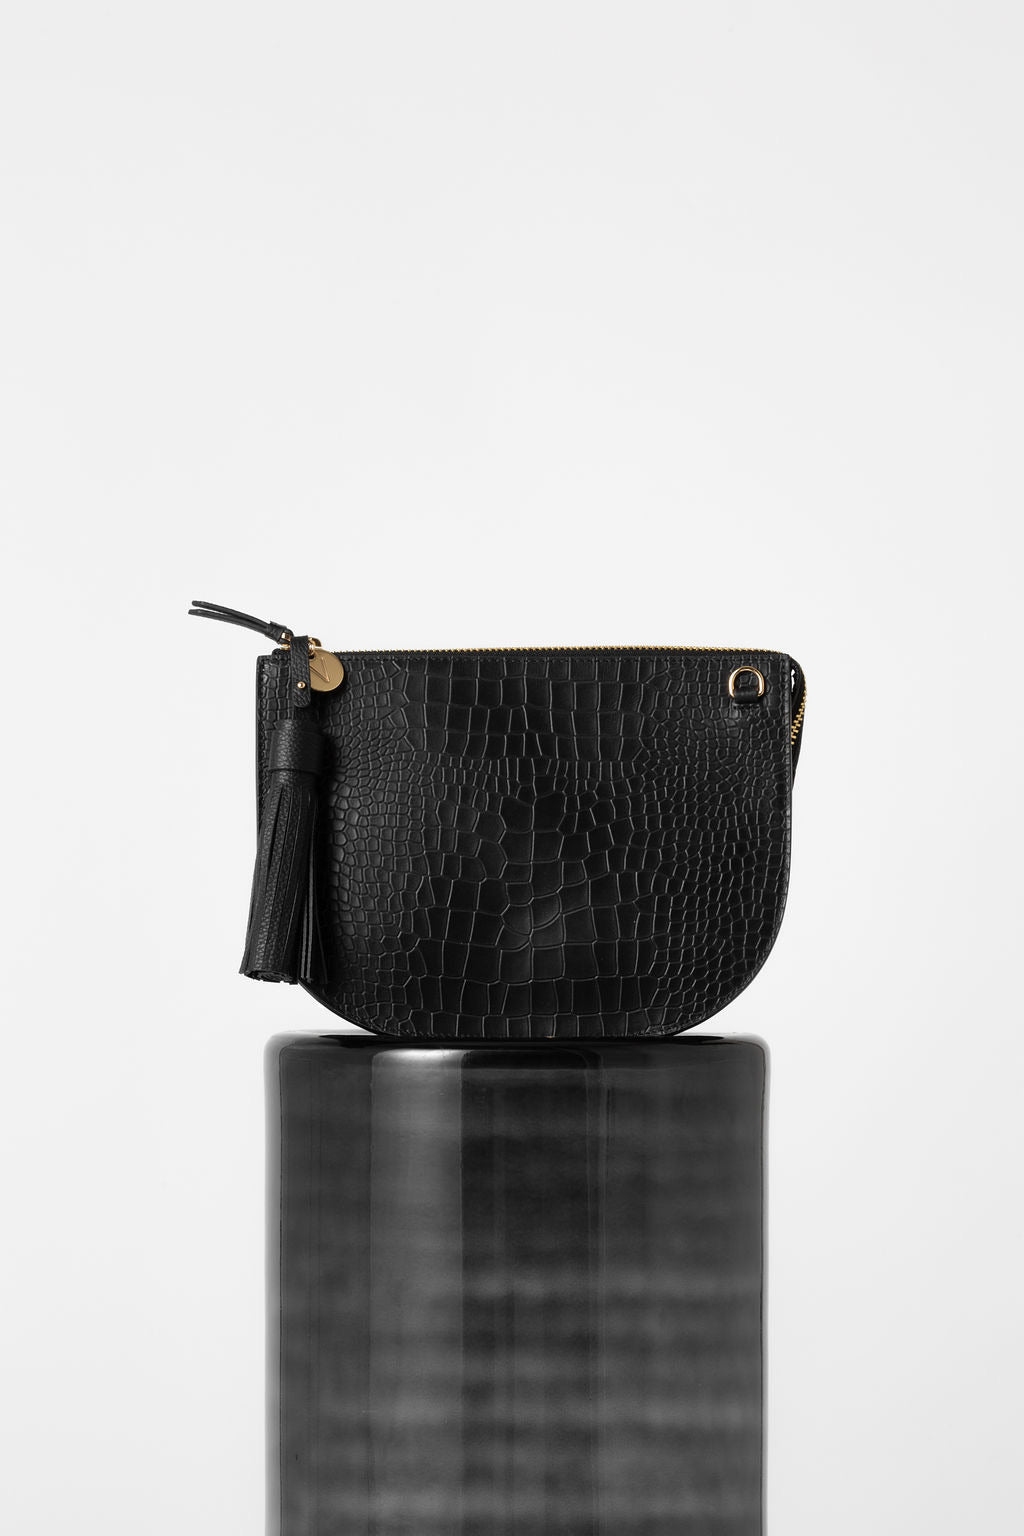 VASH II ALPHA Half Moon Croc Bag / black croc